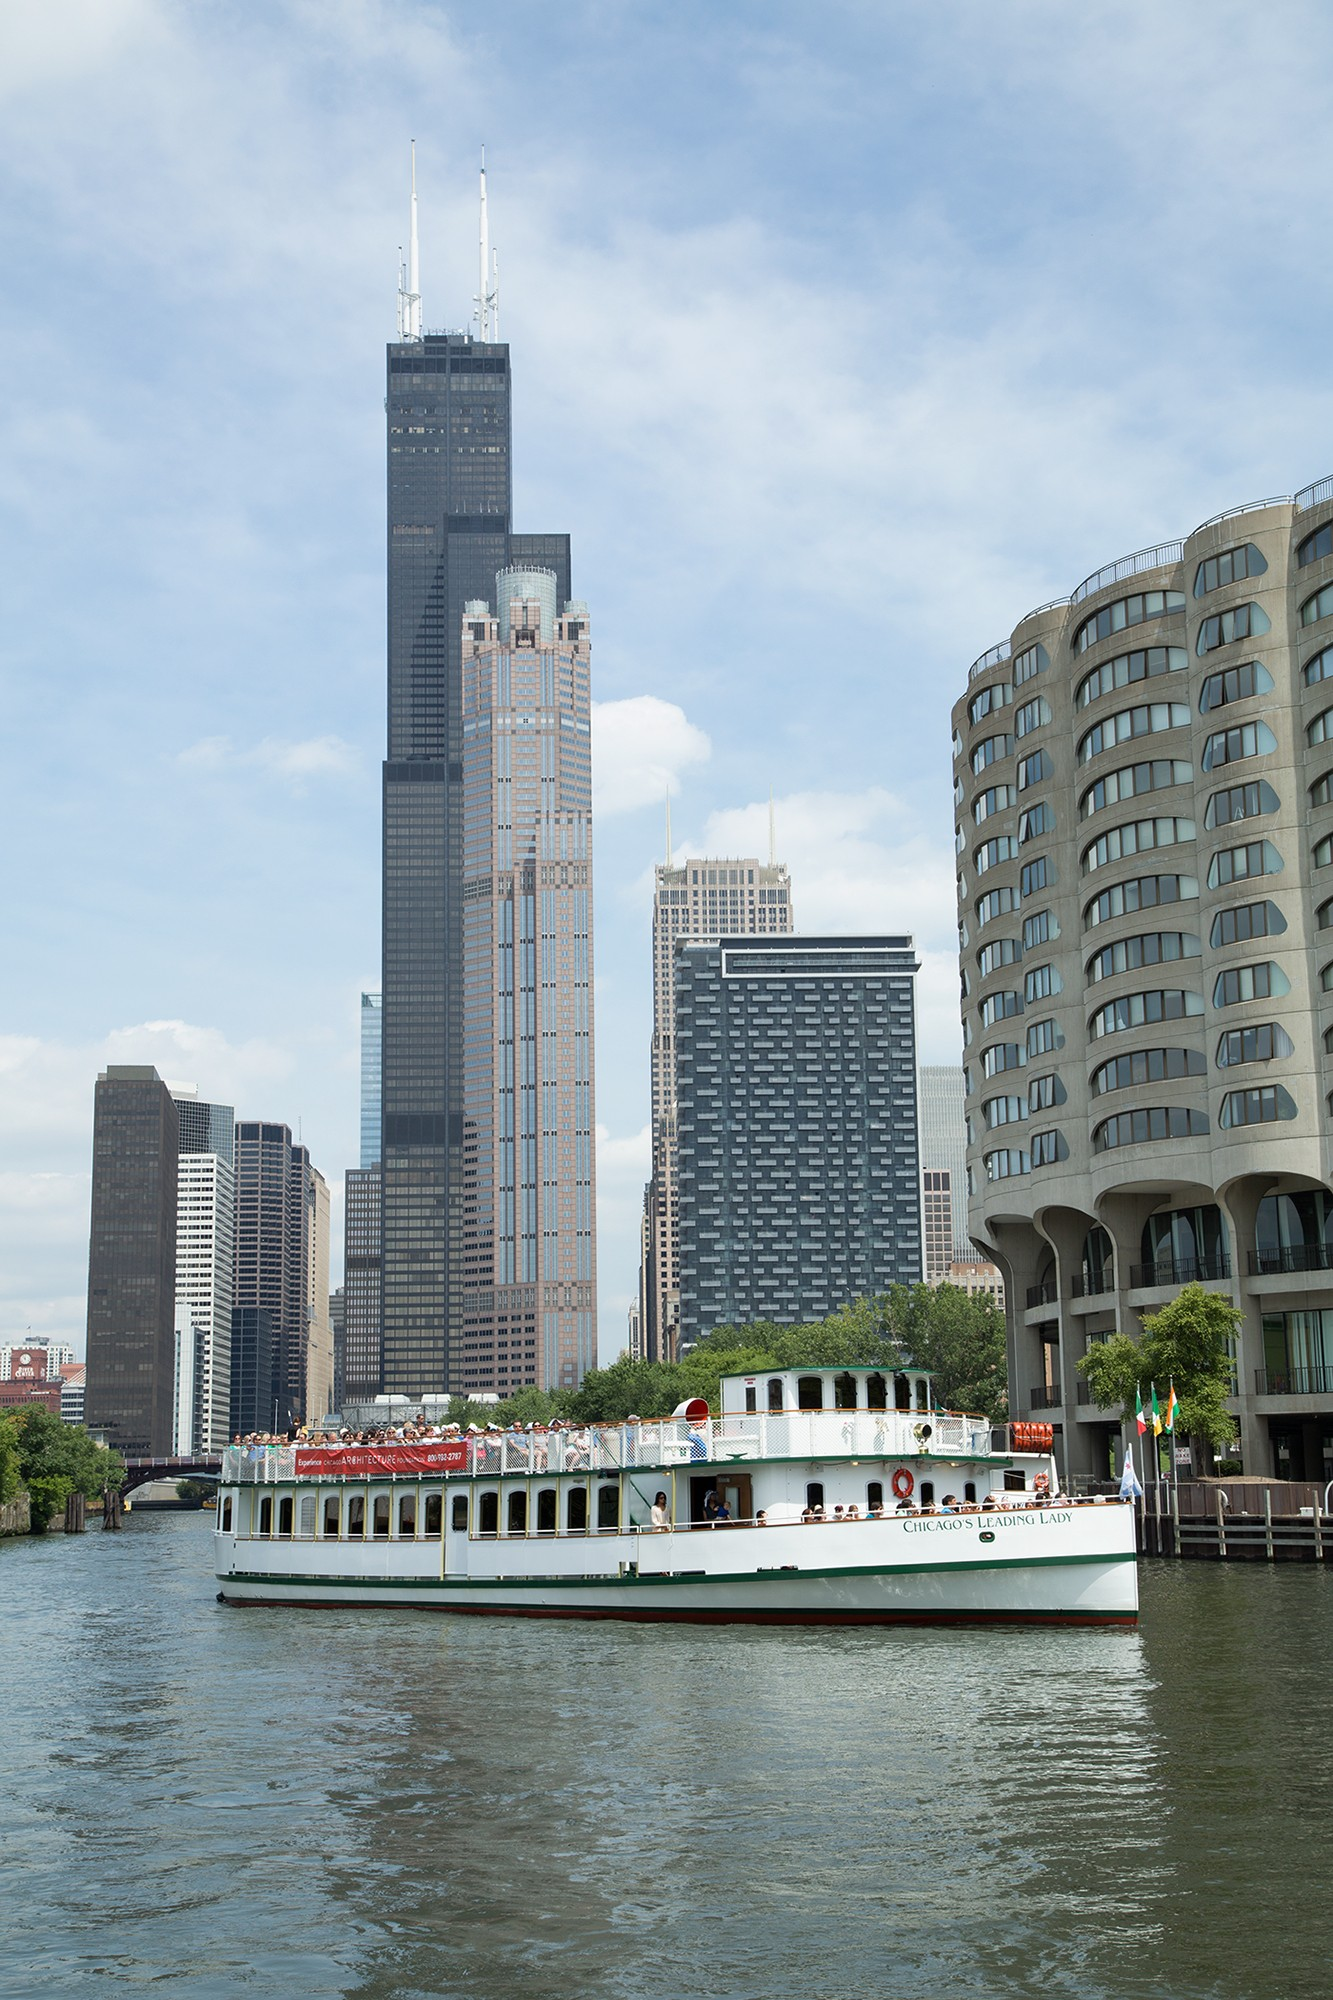 chicago architecture foundation river cruise aboard chicago s tour